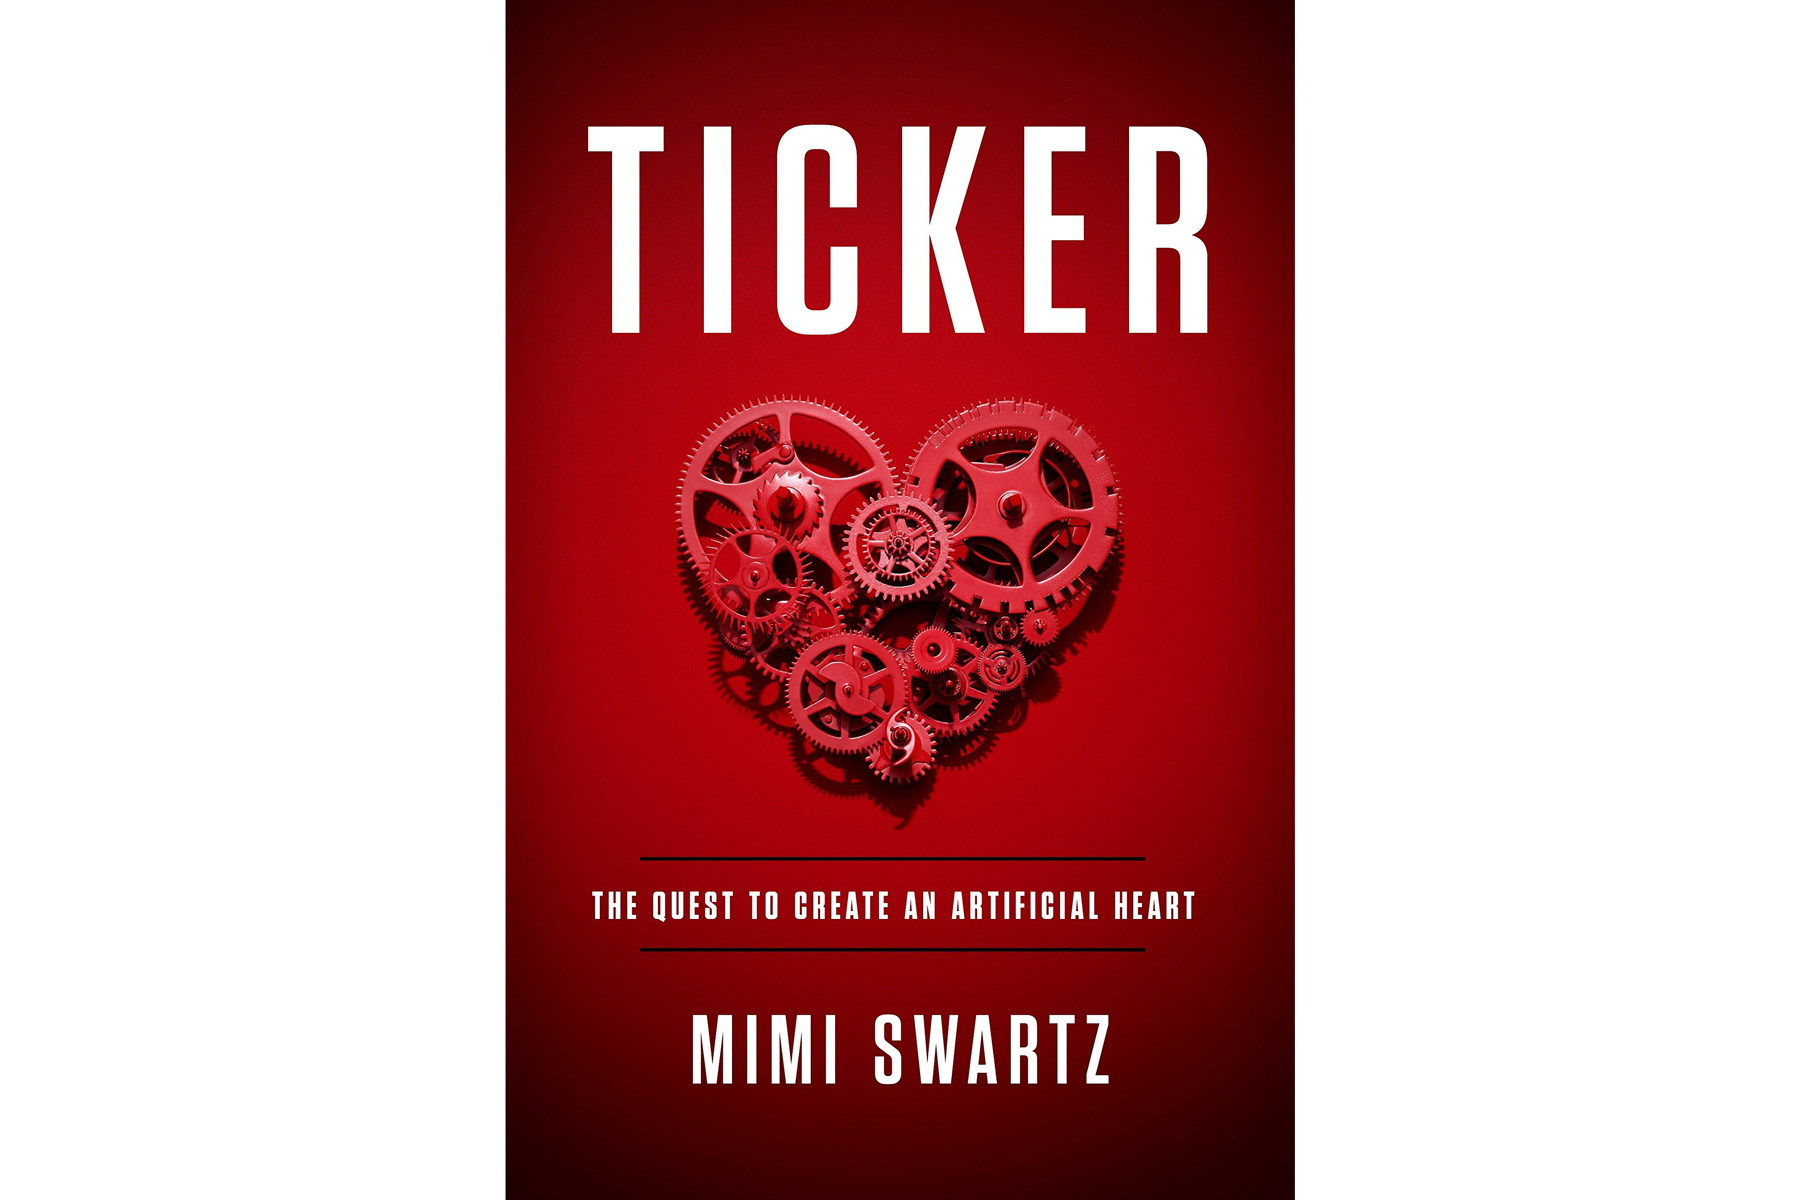 Best Books 2018 Ticker, by Mimi Swartz